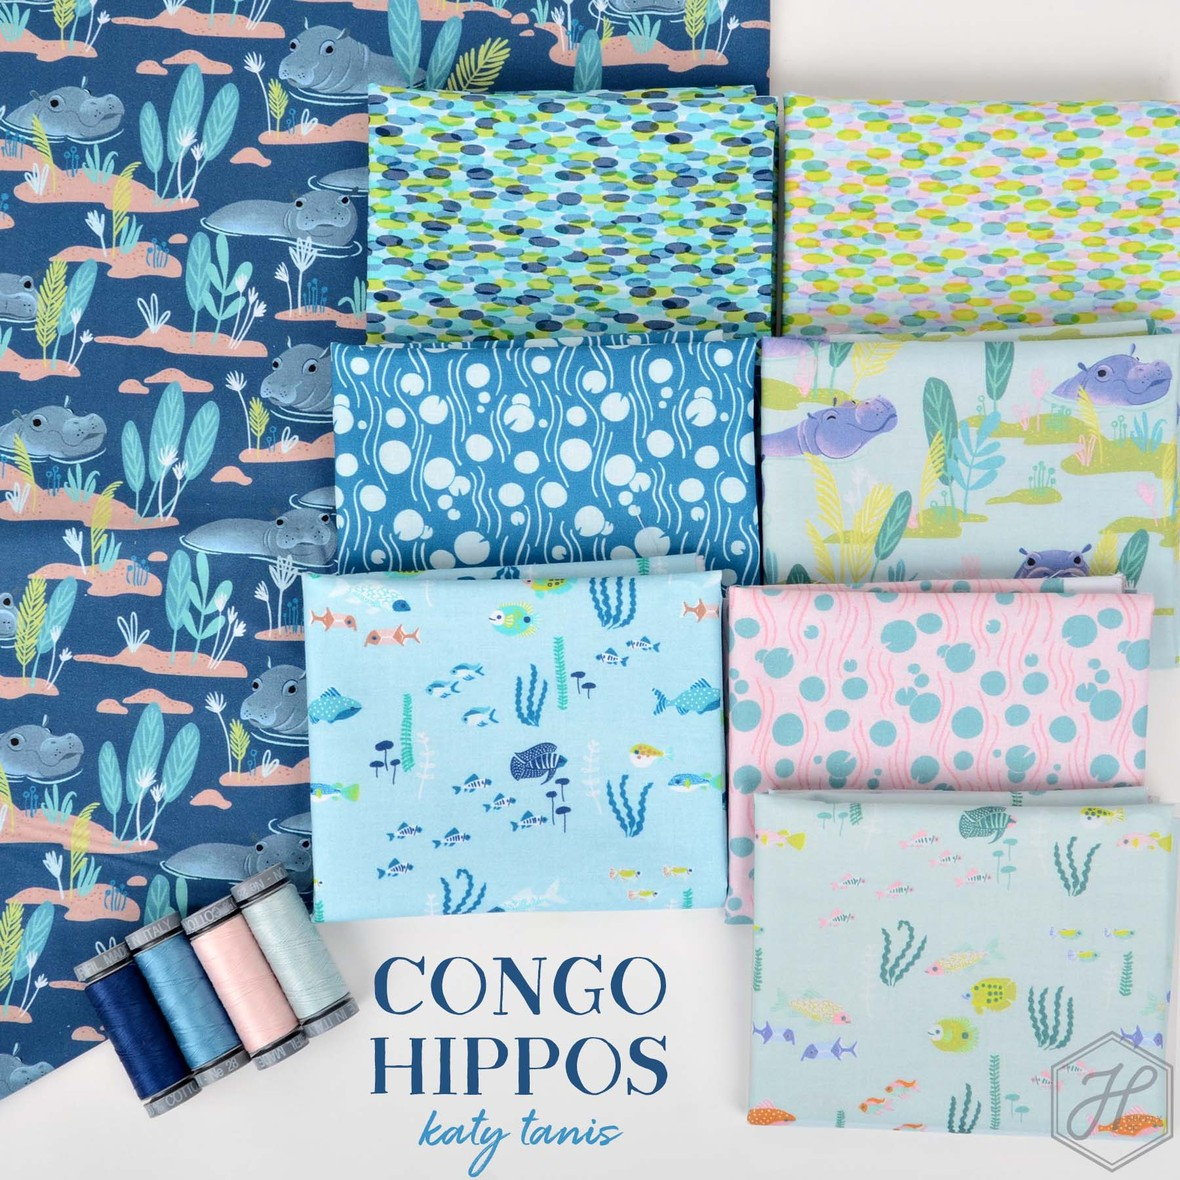 Congo Hippos Fabric Blend at Hawthorne Supply Co